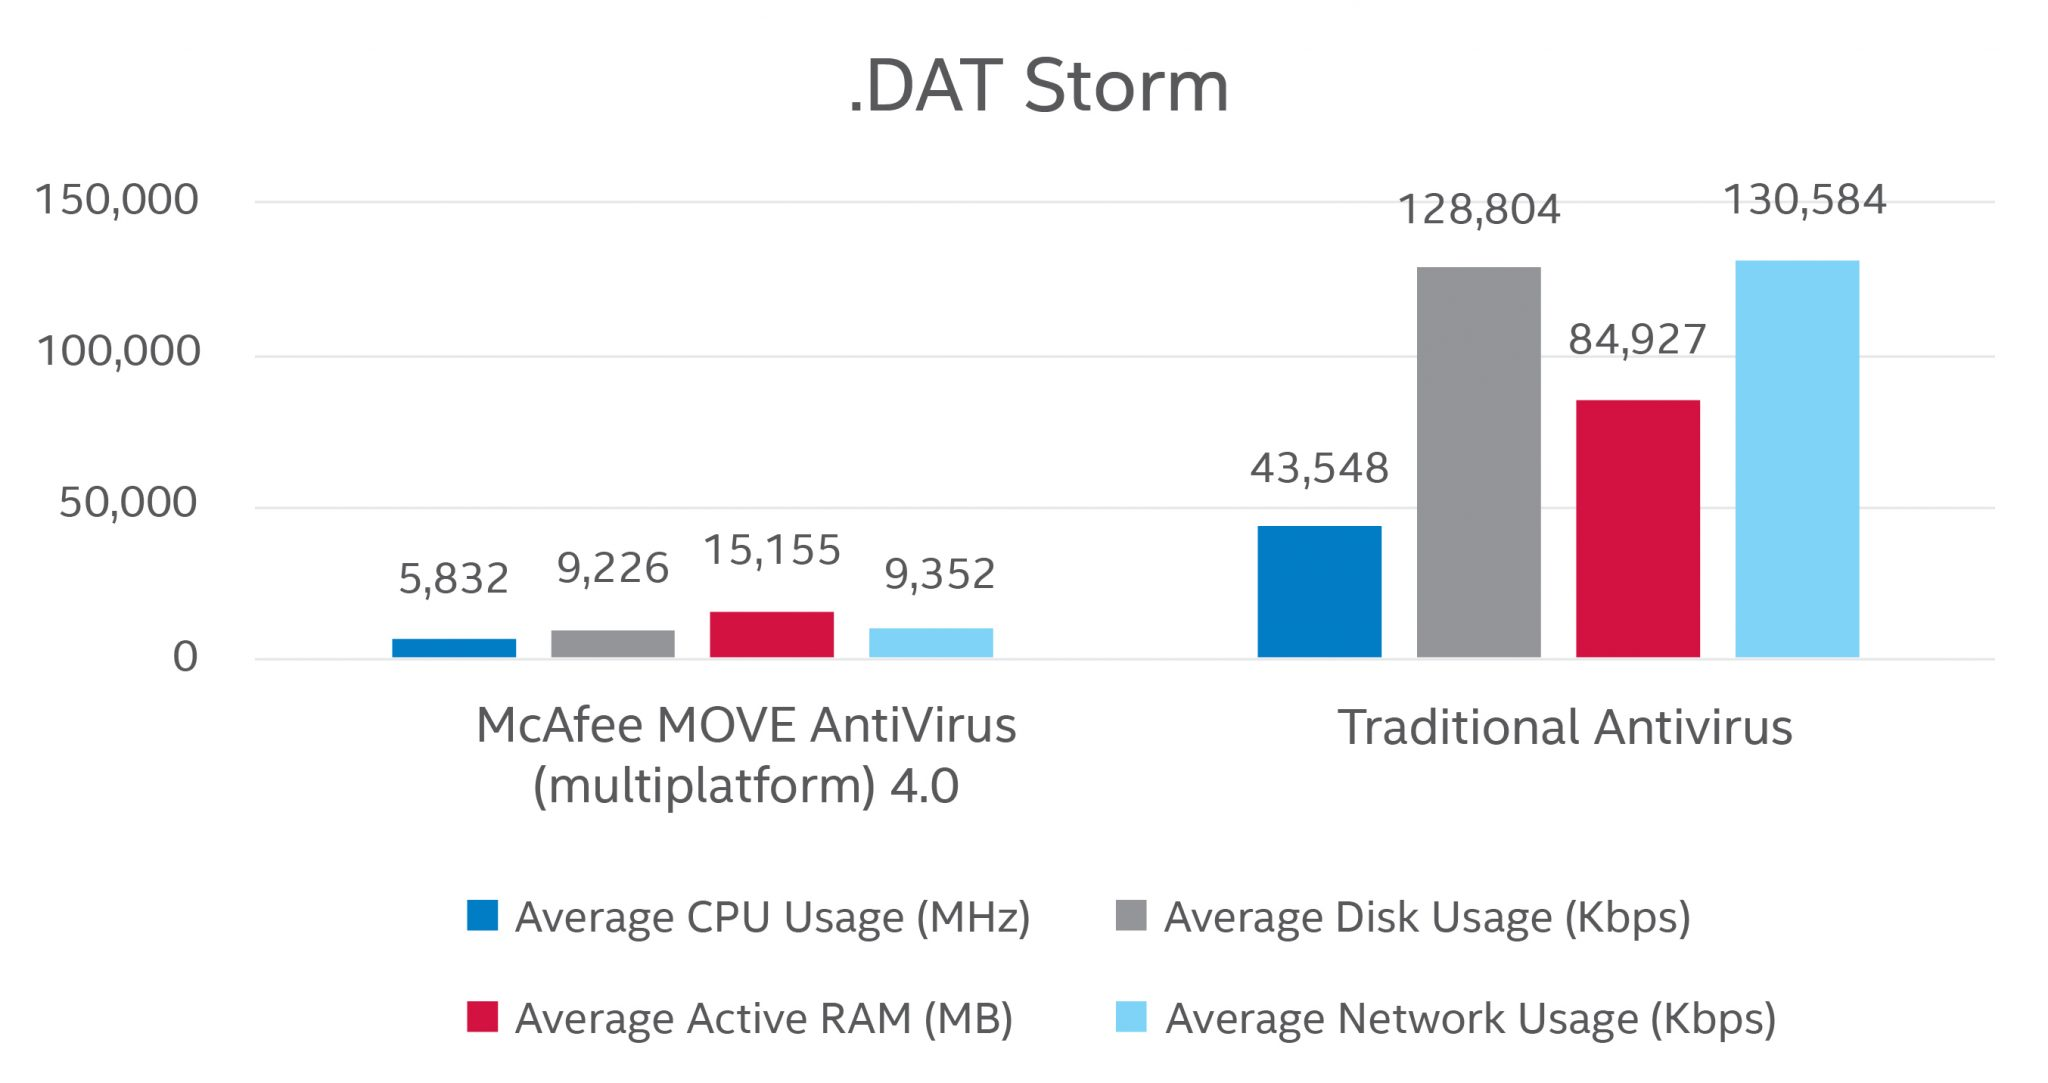 DAT Storm with and without McAfee MOVE